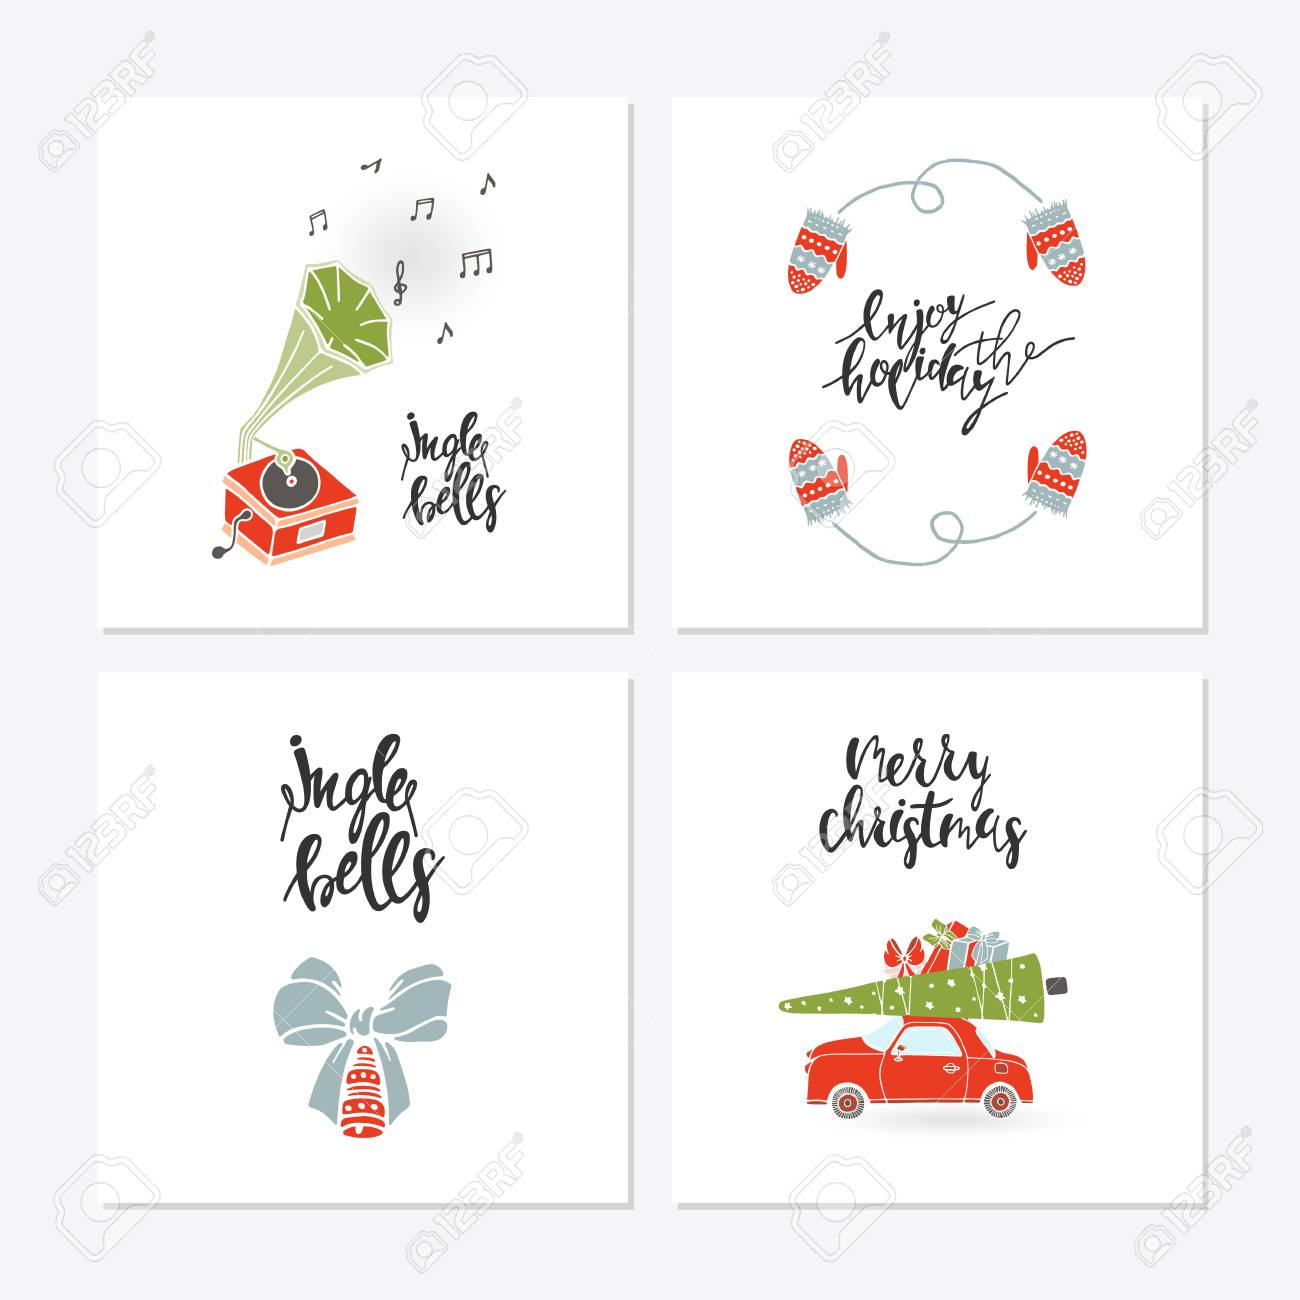 Christmas Sayings For Cards.Greeting Card With Christmas Toys Christmas Phrases And Quotes